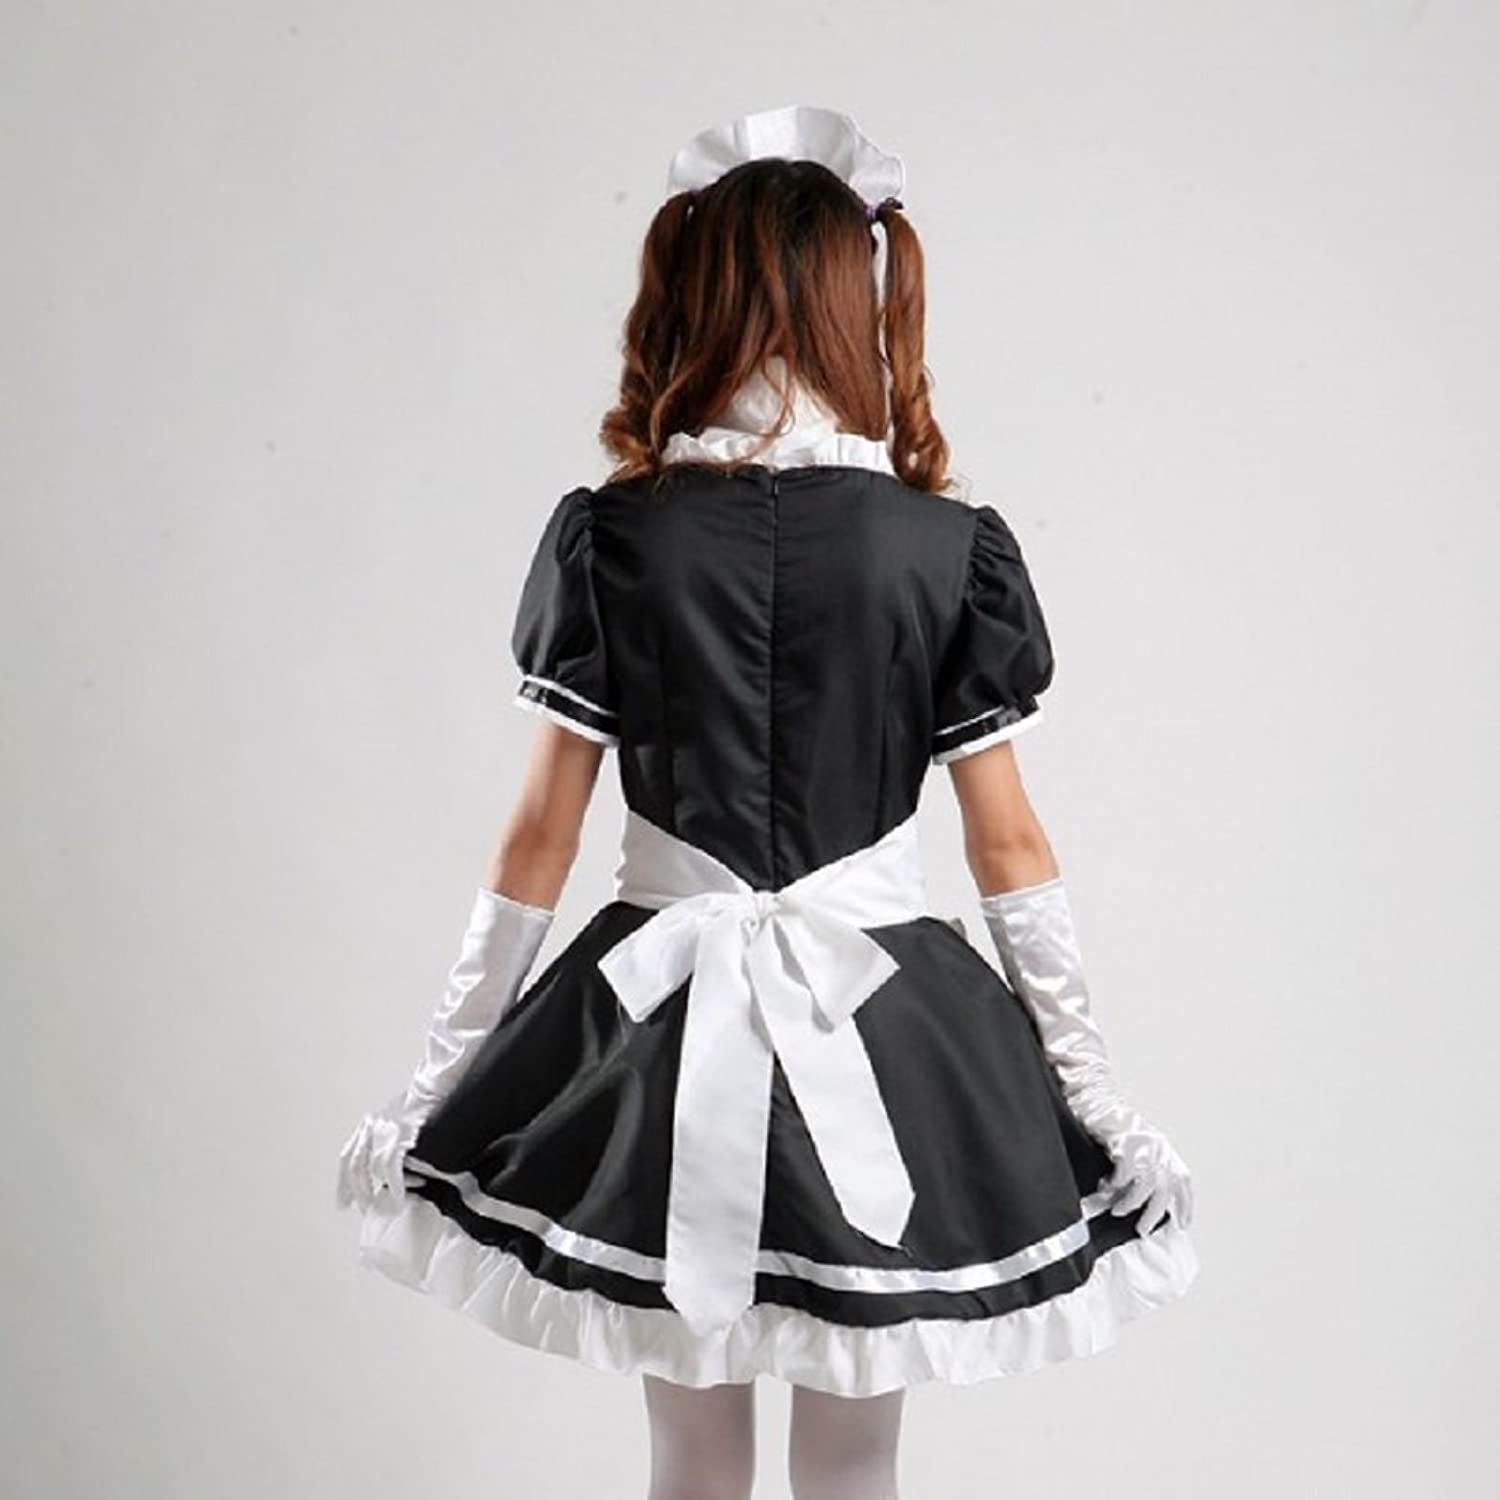 White apron fancy dress - Amazon Com Coconeen Women S Anime Cosplay French Apron Maid Fancy Dress Costume Clothing